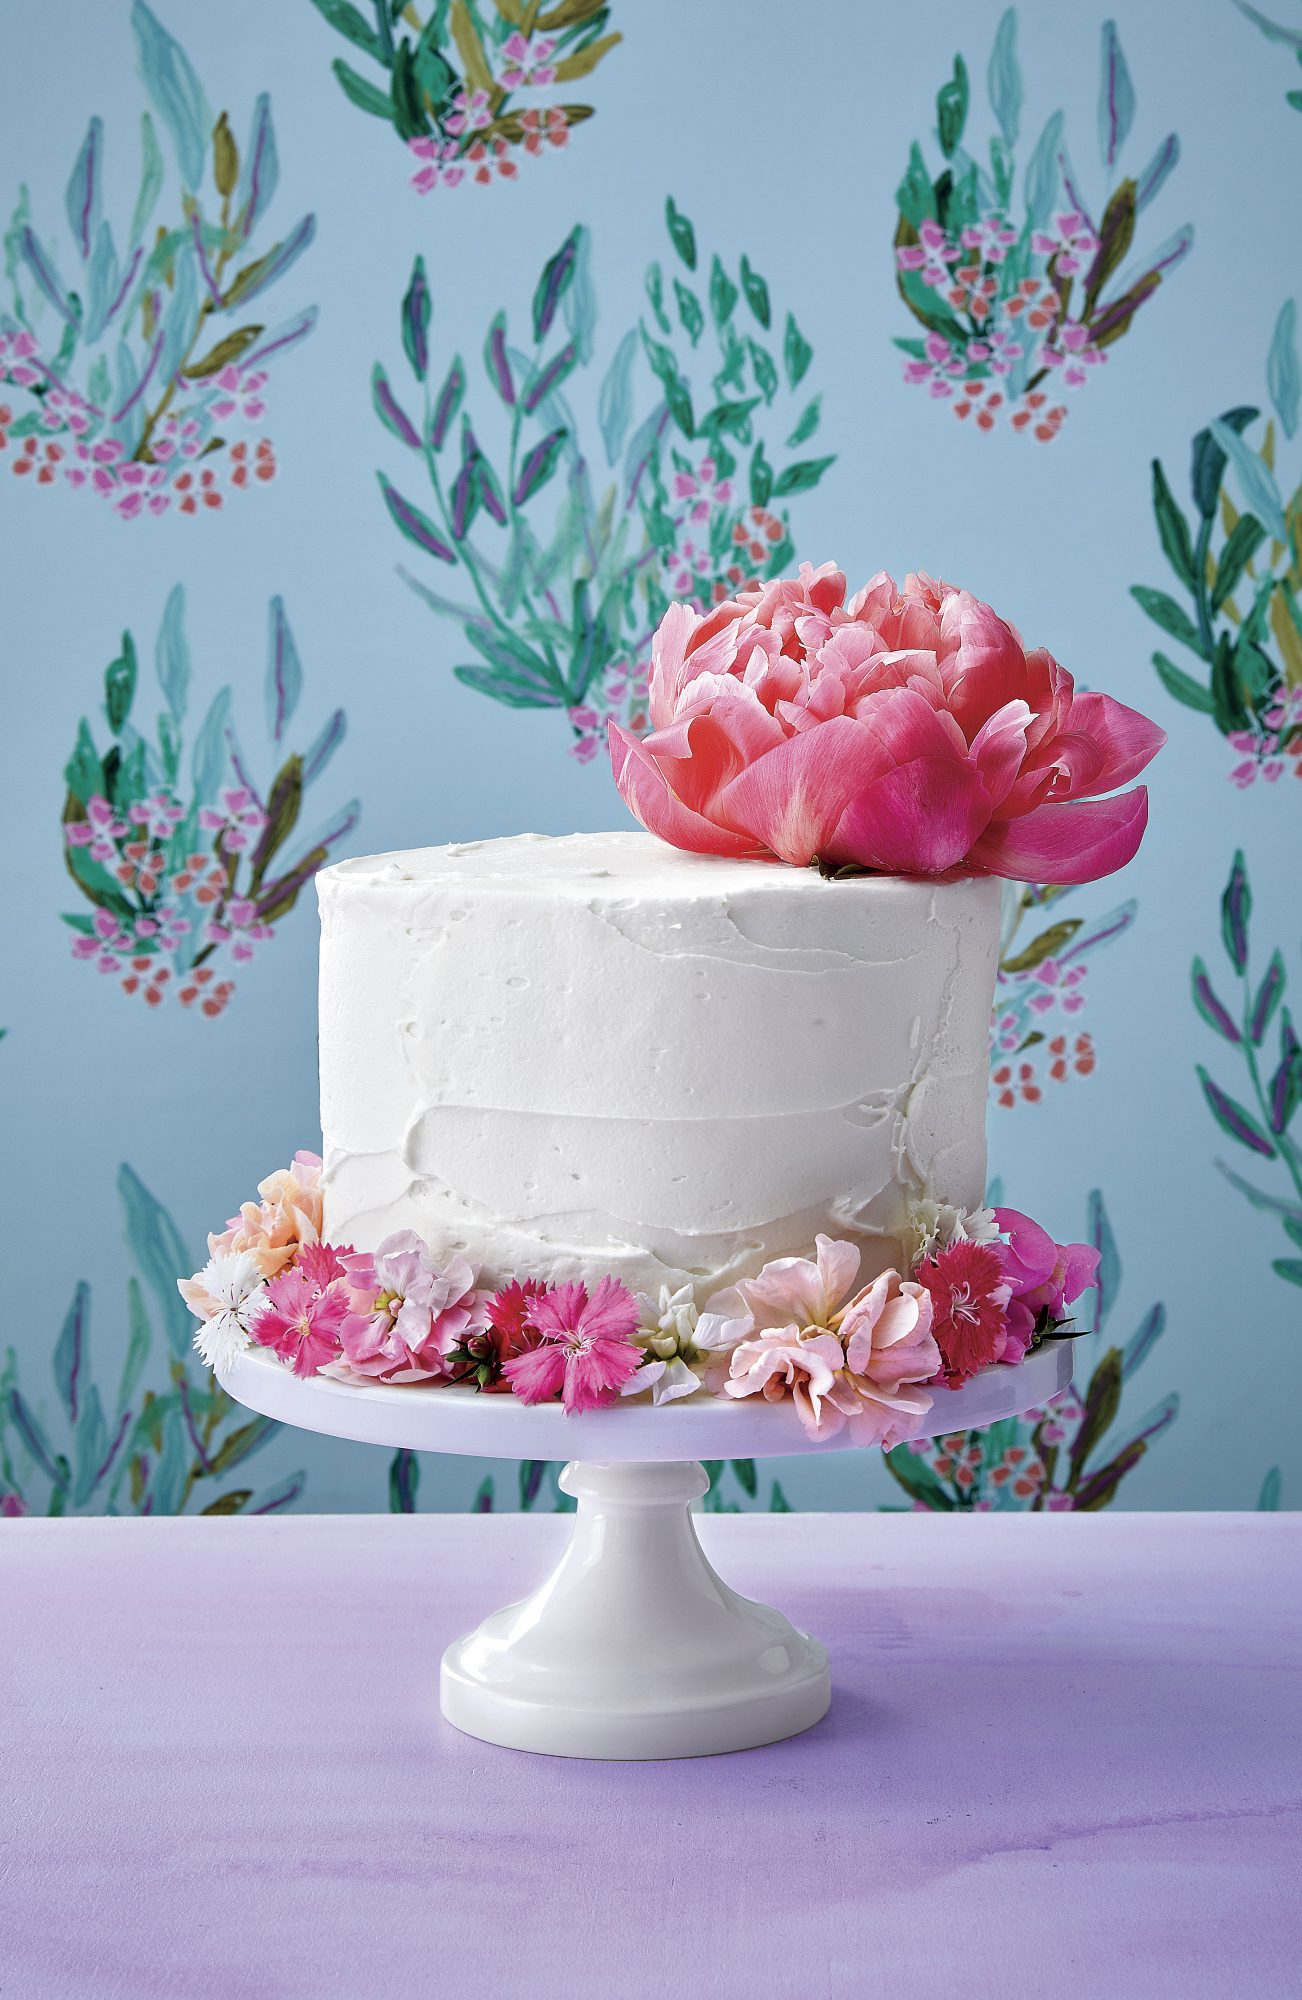 Vanilla Layer Cake with Flower Cuff